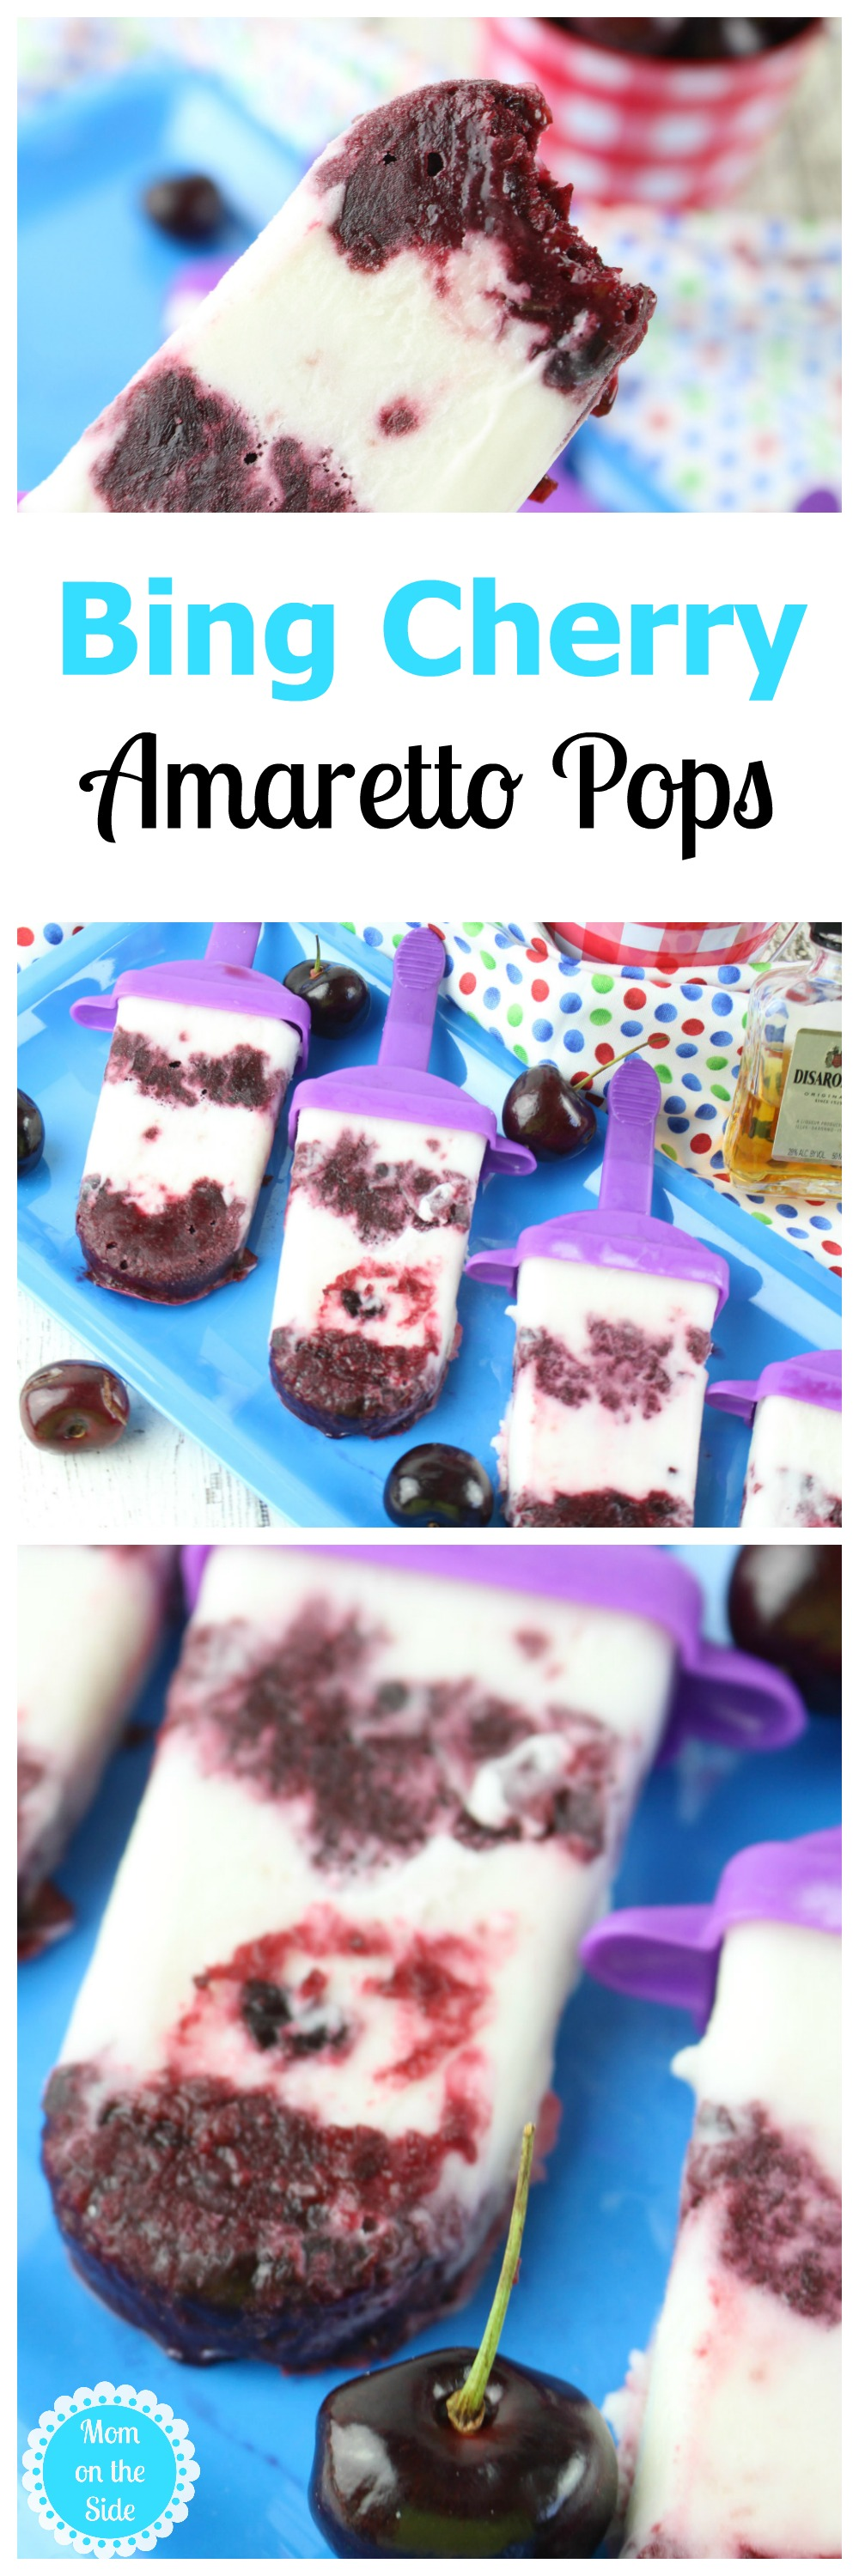 If you are looking for a delicious adult dessert with alcohol, these Bing Cherry Amaretto Pops are a must try recipe!